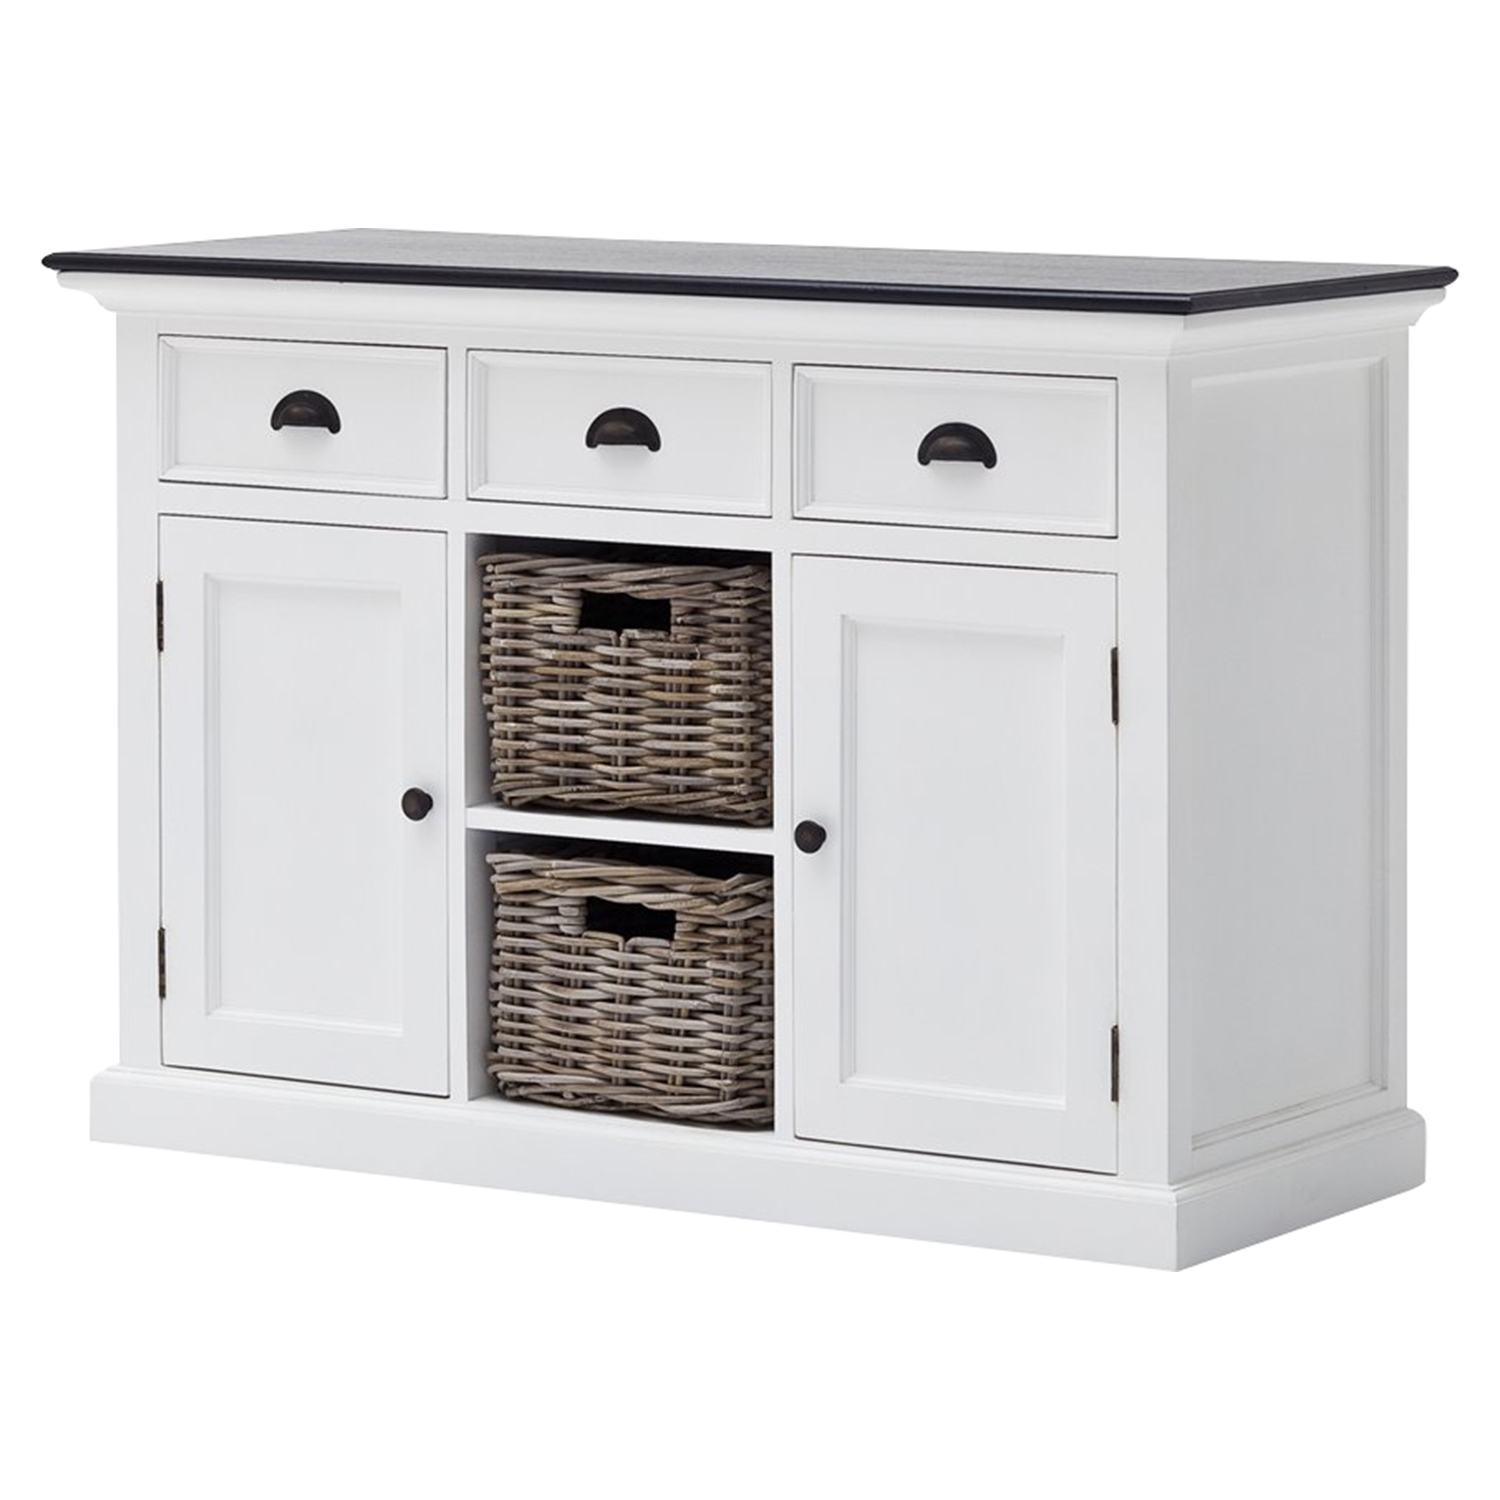 Halifax Contrast Buffet Table - 2 Baskets, Pure White, Black Top - NSOLO-B129CT